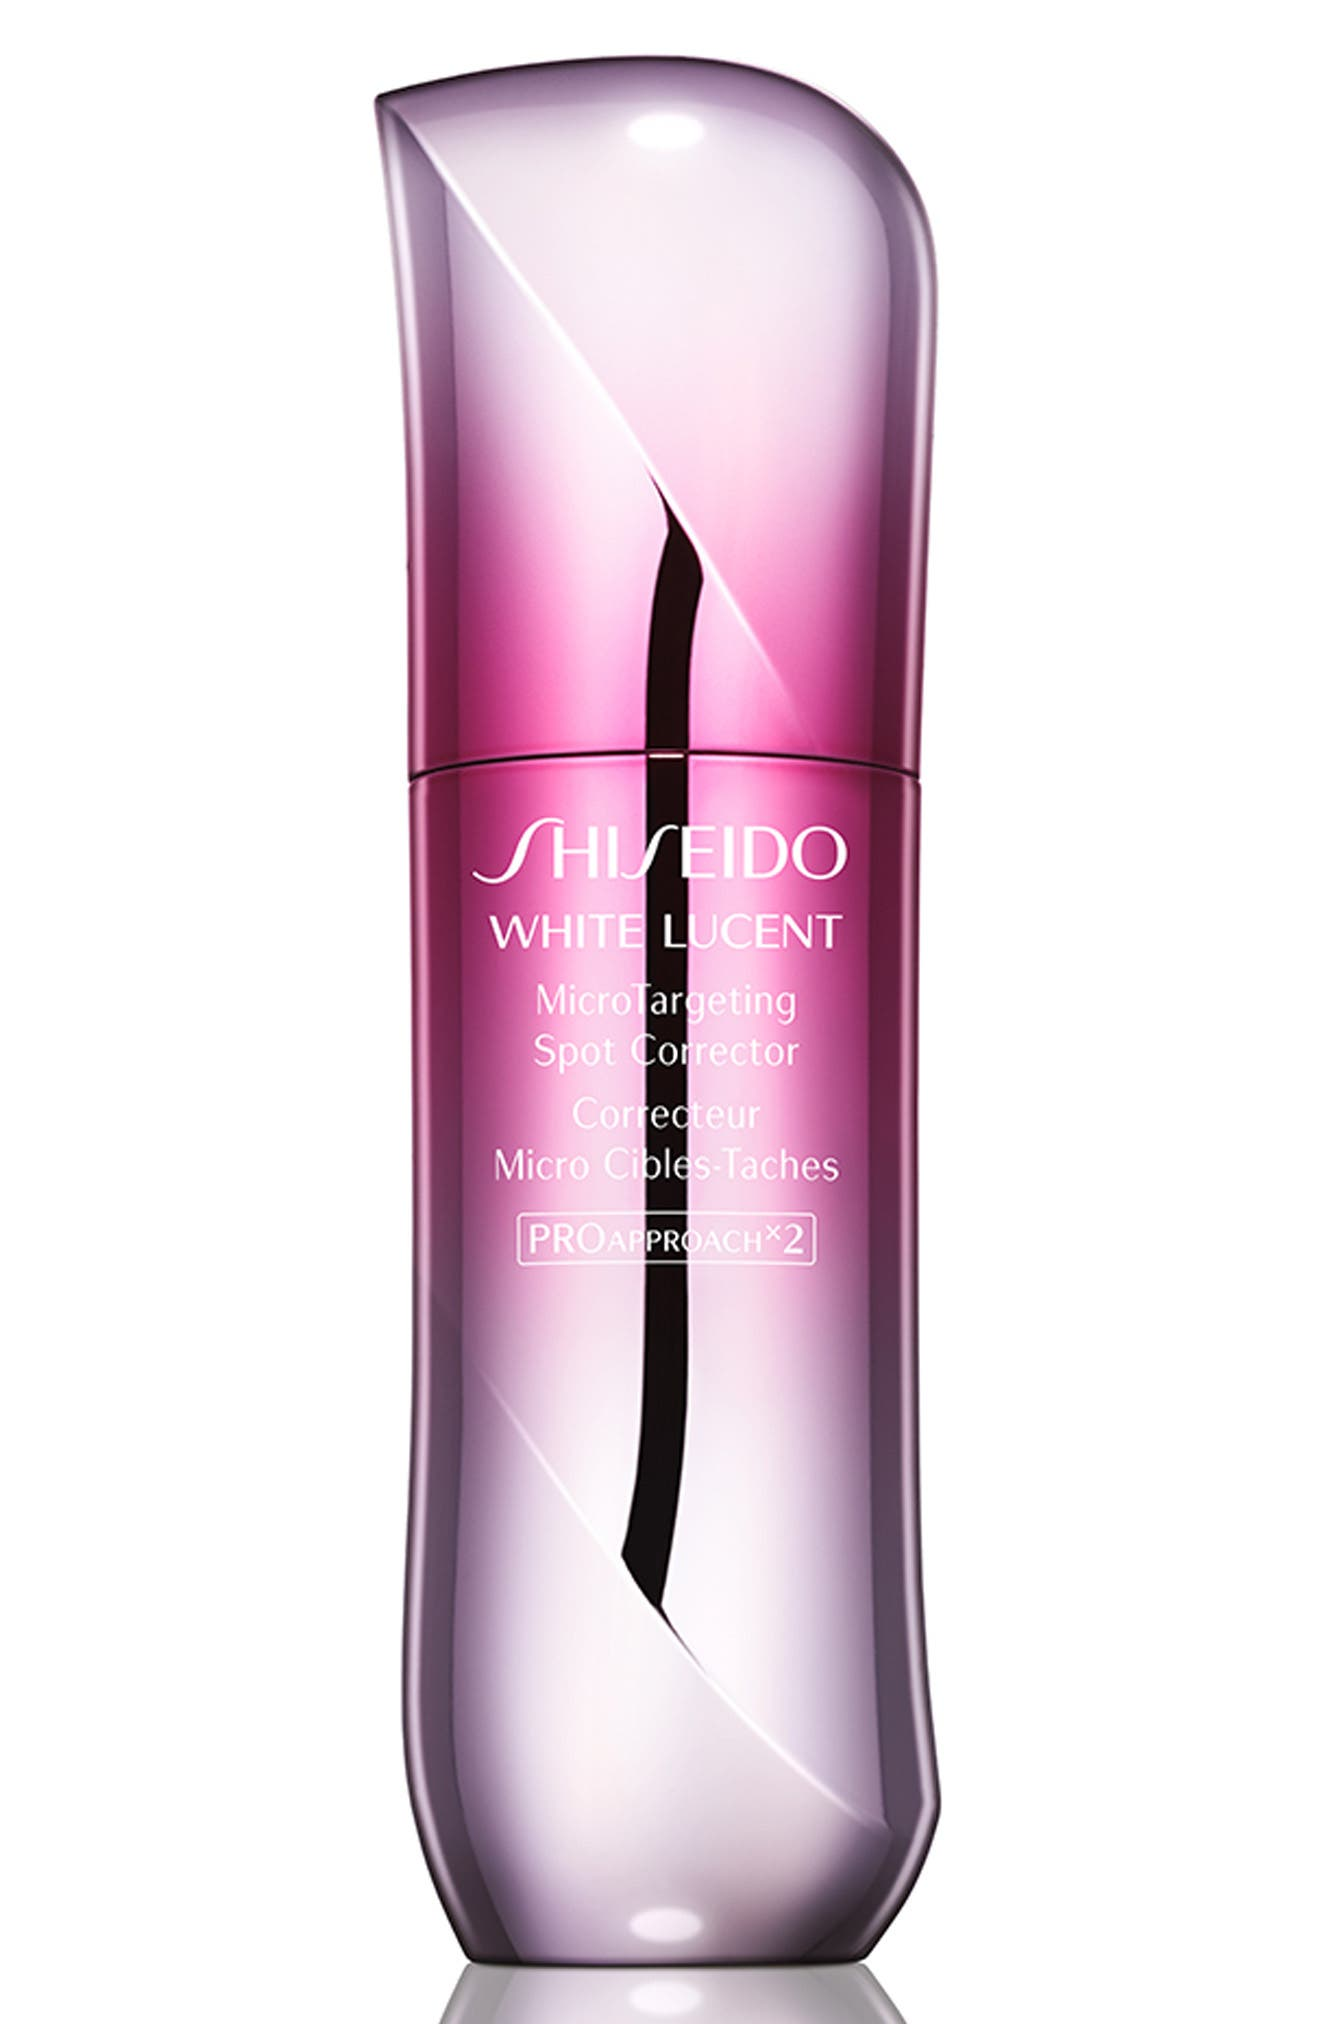 SHISEIDO, White Lucent MicroTargeting Spot Corrector, Alternate thumbnail 4, color, NO COLOR